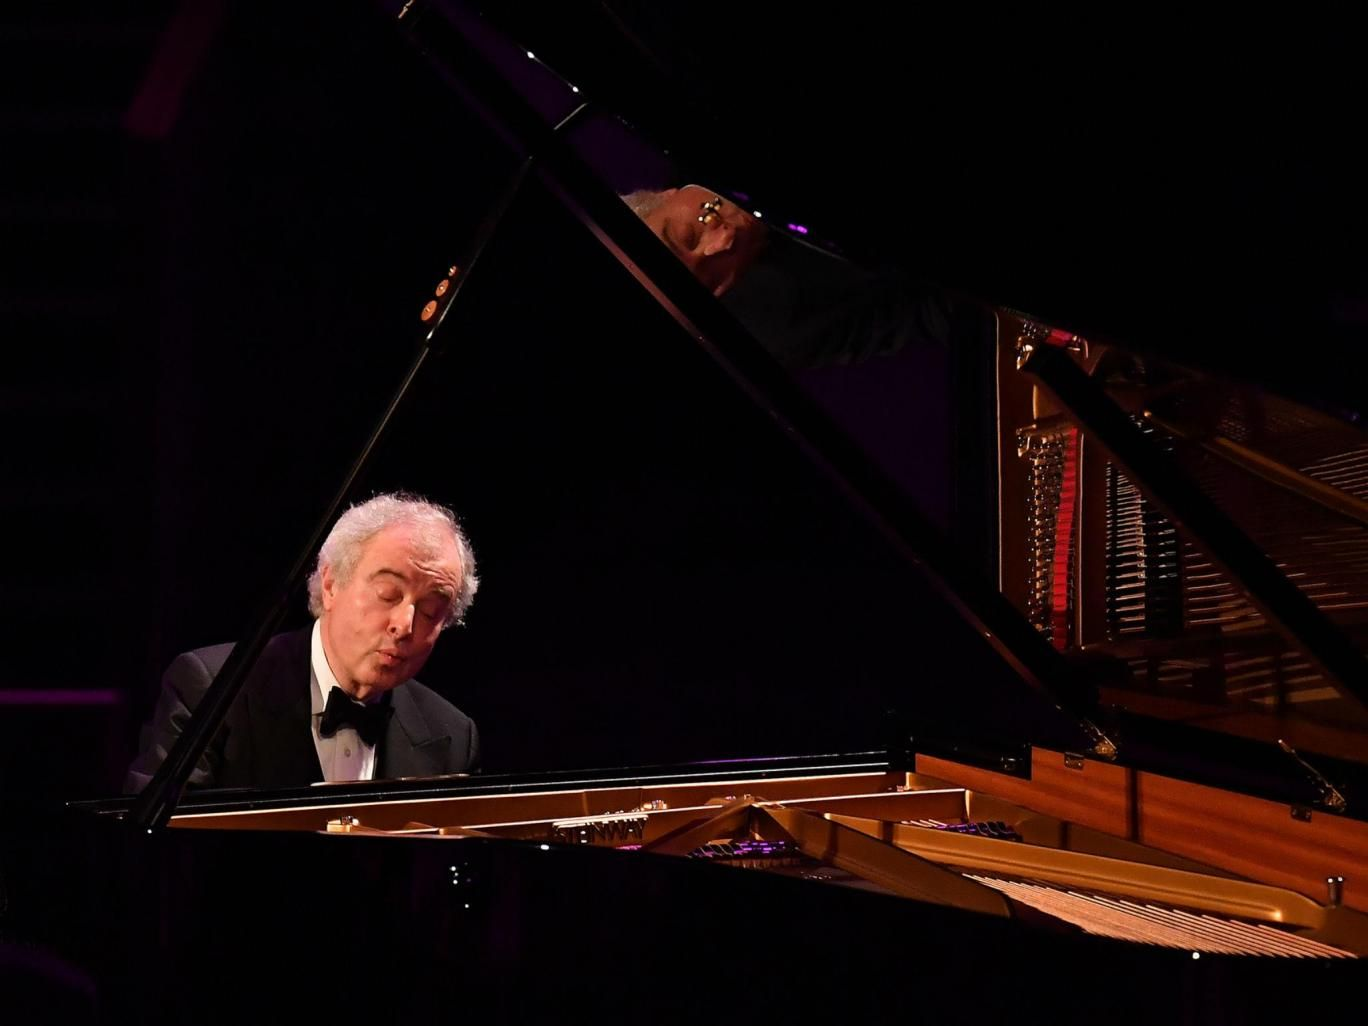 Johann Sebastian Bach: The Well-Tempered Clavier, Book I, BWV 846-869 – András Schiff